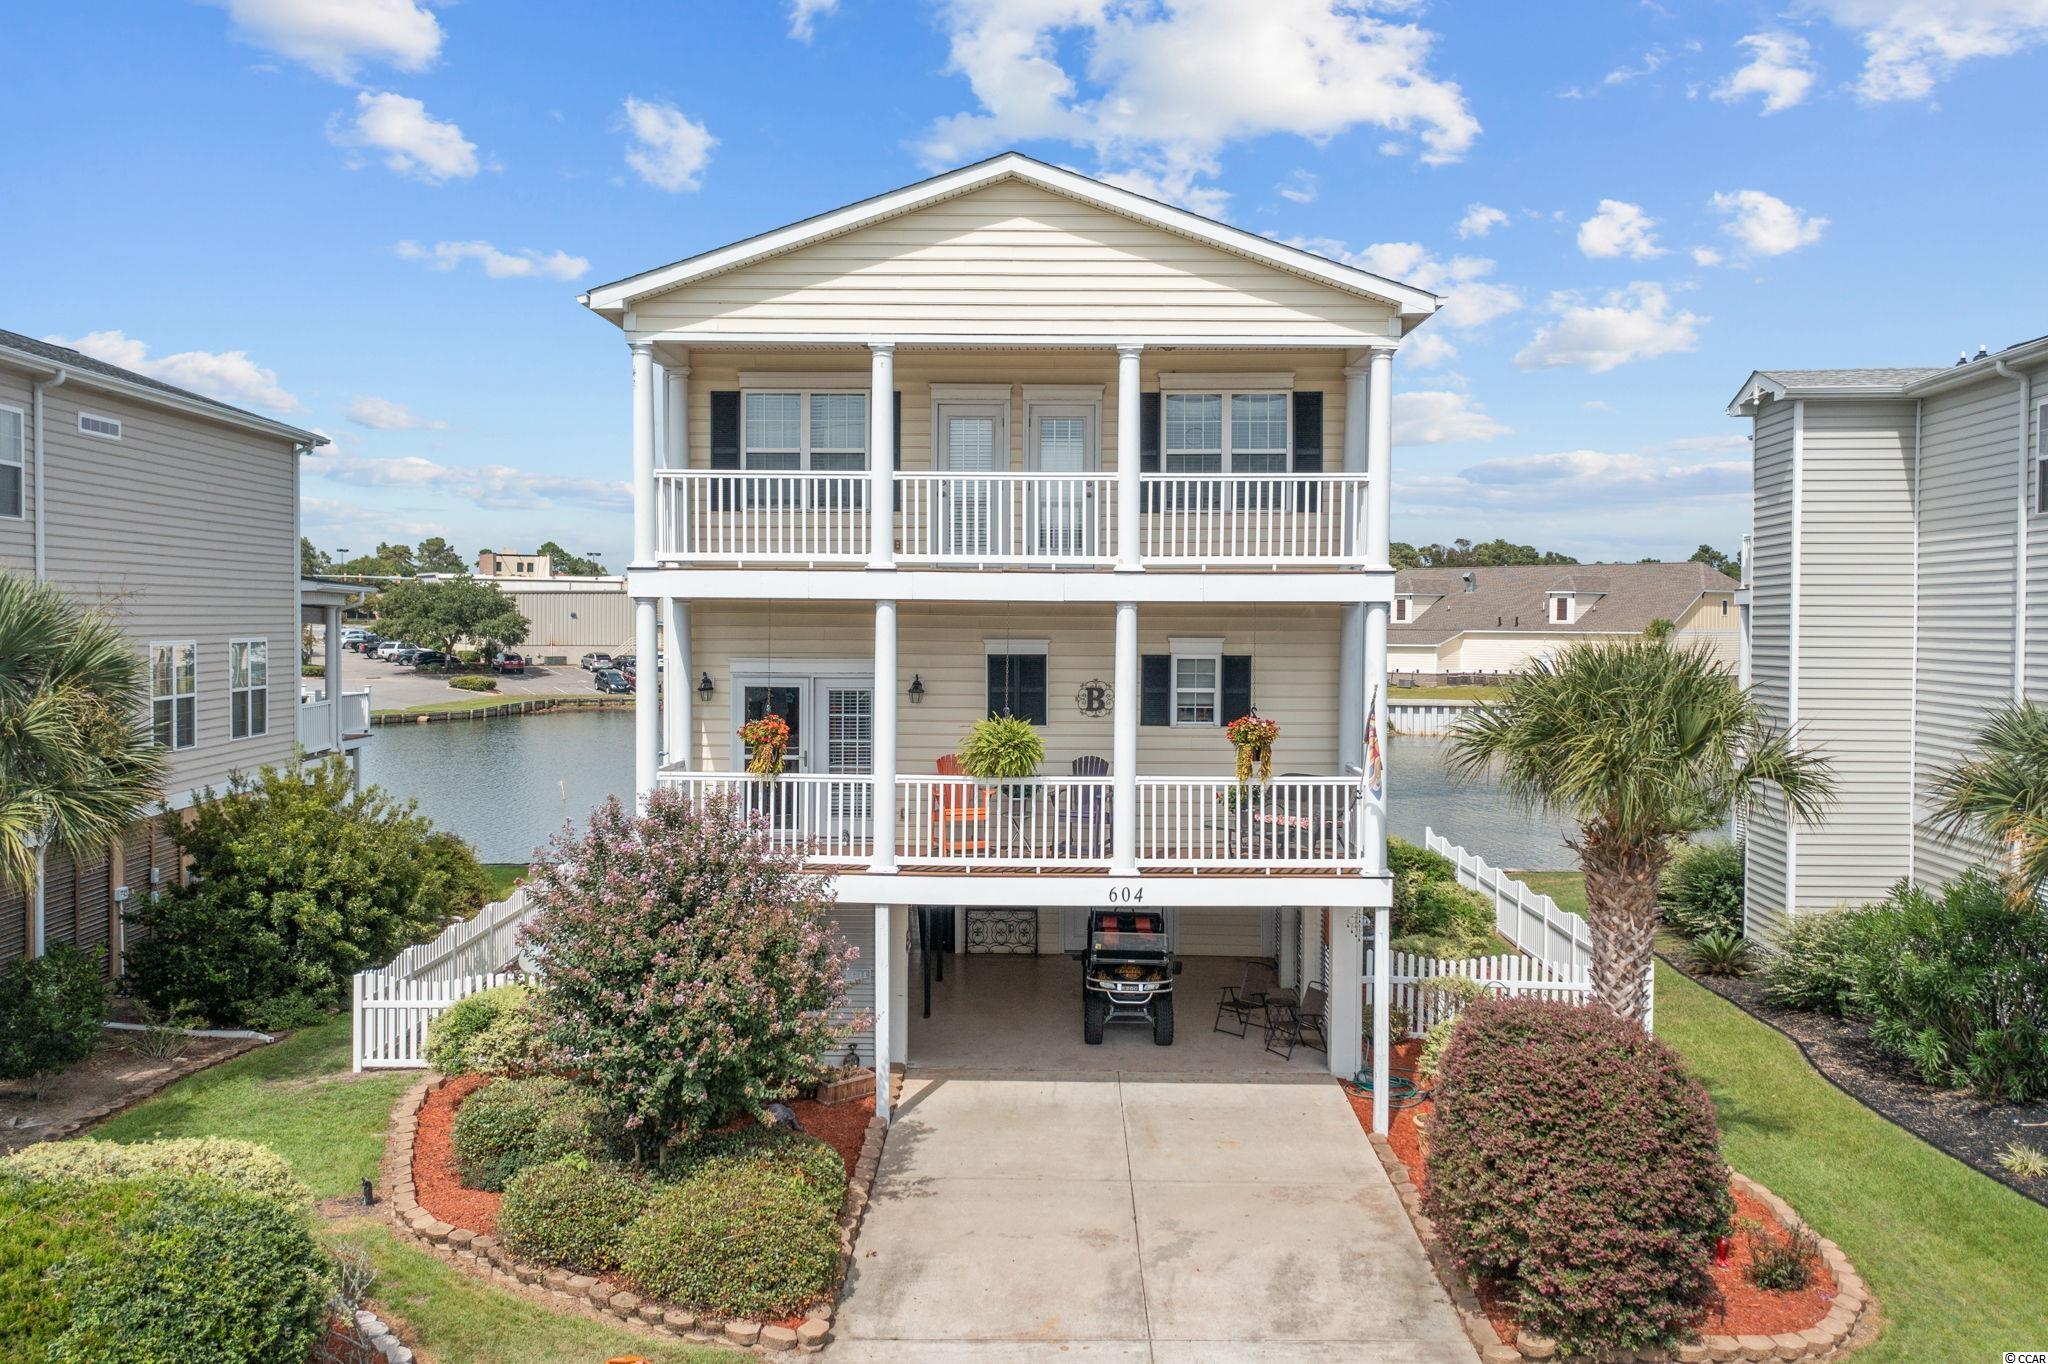 Beautiful home in the heart of North Myrtle Beach. FURNITURE IS NEGOTIABLE. Turnkey and ready to move in, just one block from Main Street. Being located in the Ocean Drive section of North Myrtle makes this home ideal for either a vacation home or primary residence. The home has an open floor plan with a large kitchen that includes stainless steel appliances and tiled flooring which joins the dining and living area that features hardwood floors throughout home.  The main floor also features a balcony that runs the entire length of the front of the home. Your master suite has large walk-in closet, and the bath features a garden tub, shower and tiled floors. The master bedroom opens up to a large deck that runs the full length of the second floor and overlooks water behind the home. The top floor also includes two additional large bedrooms and a full bath. Both of these bedrooms have access to a balcony. No HOA Association and No HOA DUES!